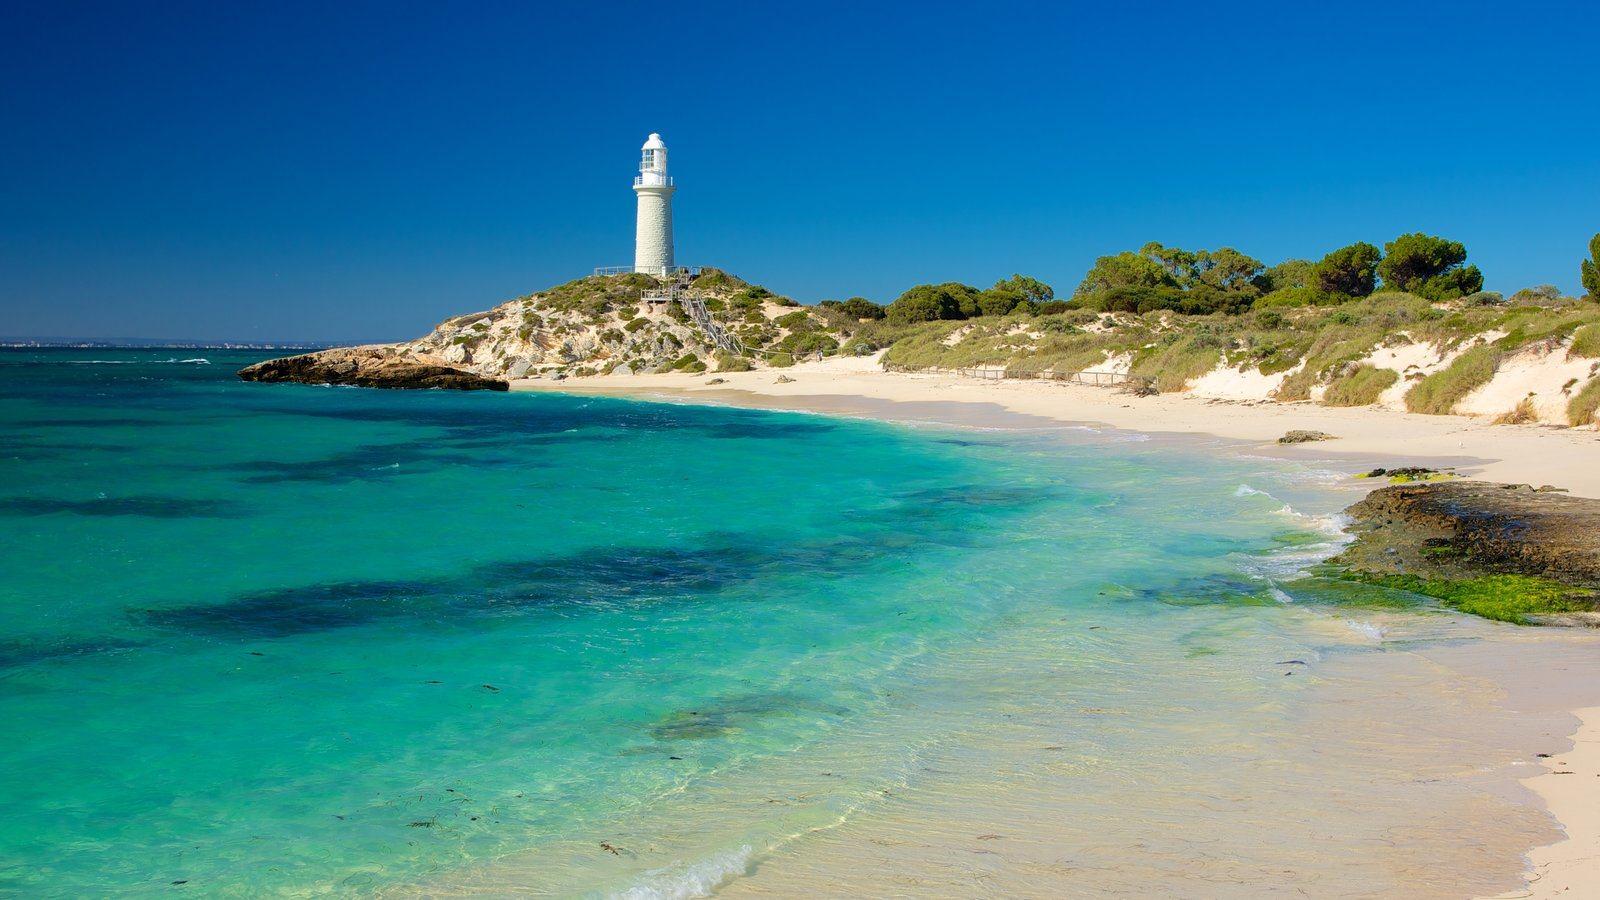 Coastal Travel Packages Coastal Vacations Travel Western Australia Pictures: View Photos & Images of Western Australia